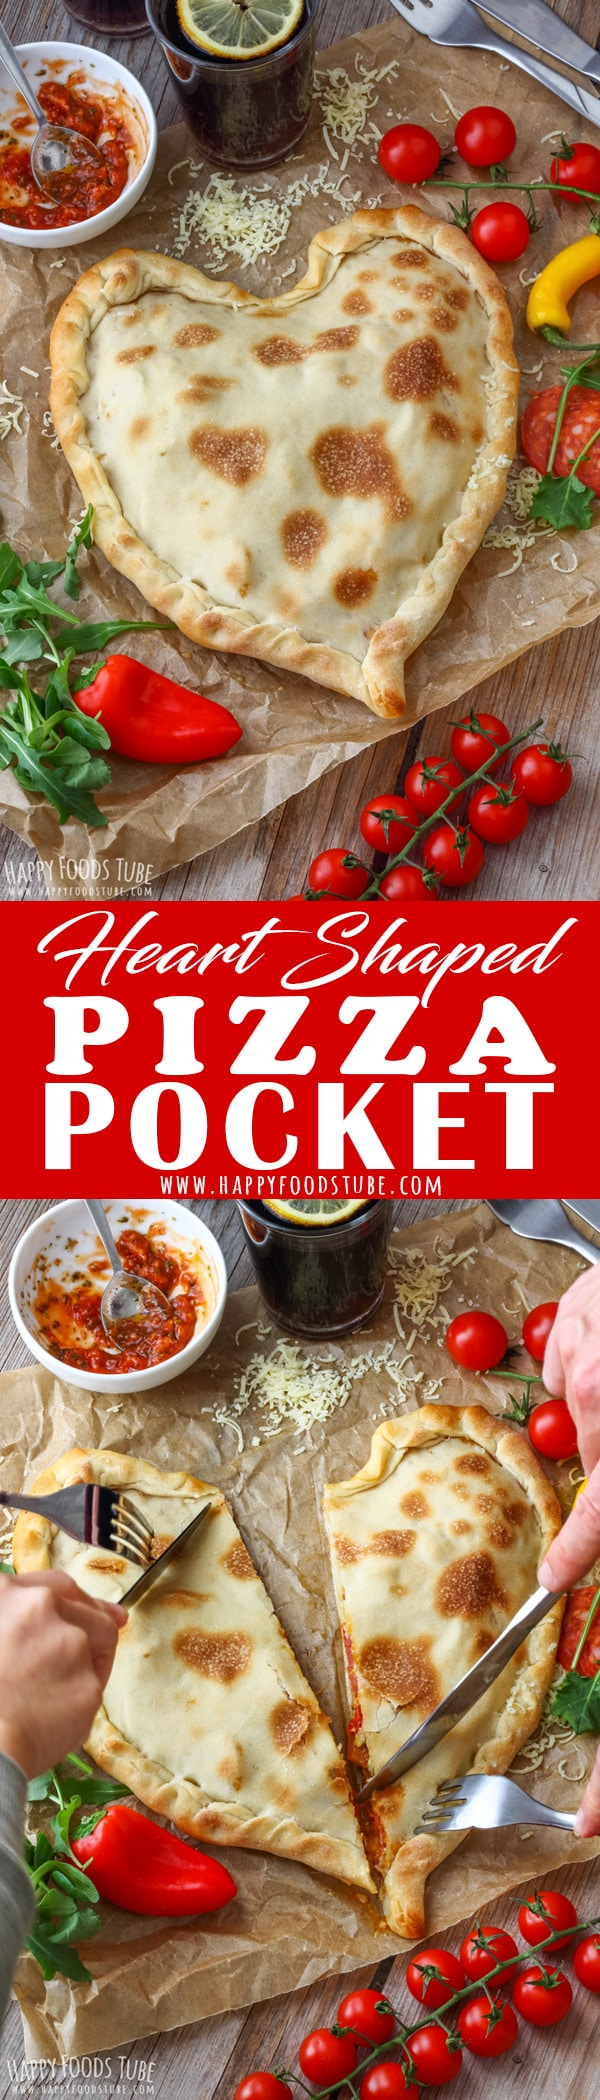 Surprise your loved ones with this Heart Shaped Pizza Pocket. It's fun, tastes amazing and the ingredients can be adjusted to your liking. Perfect for Valentine's Day or any other day. #homemade #pizza #pockets #recipe #heartshaped #valentinesday #howtomake #calzone